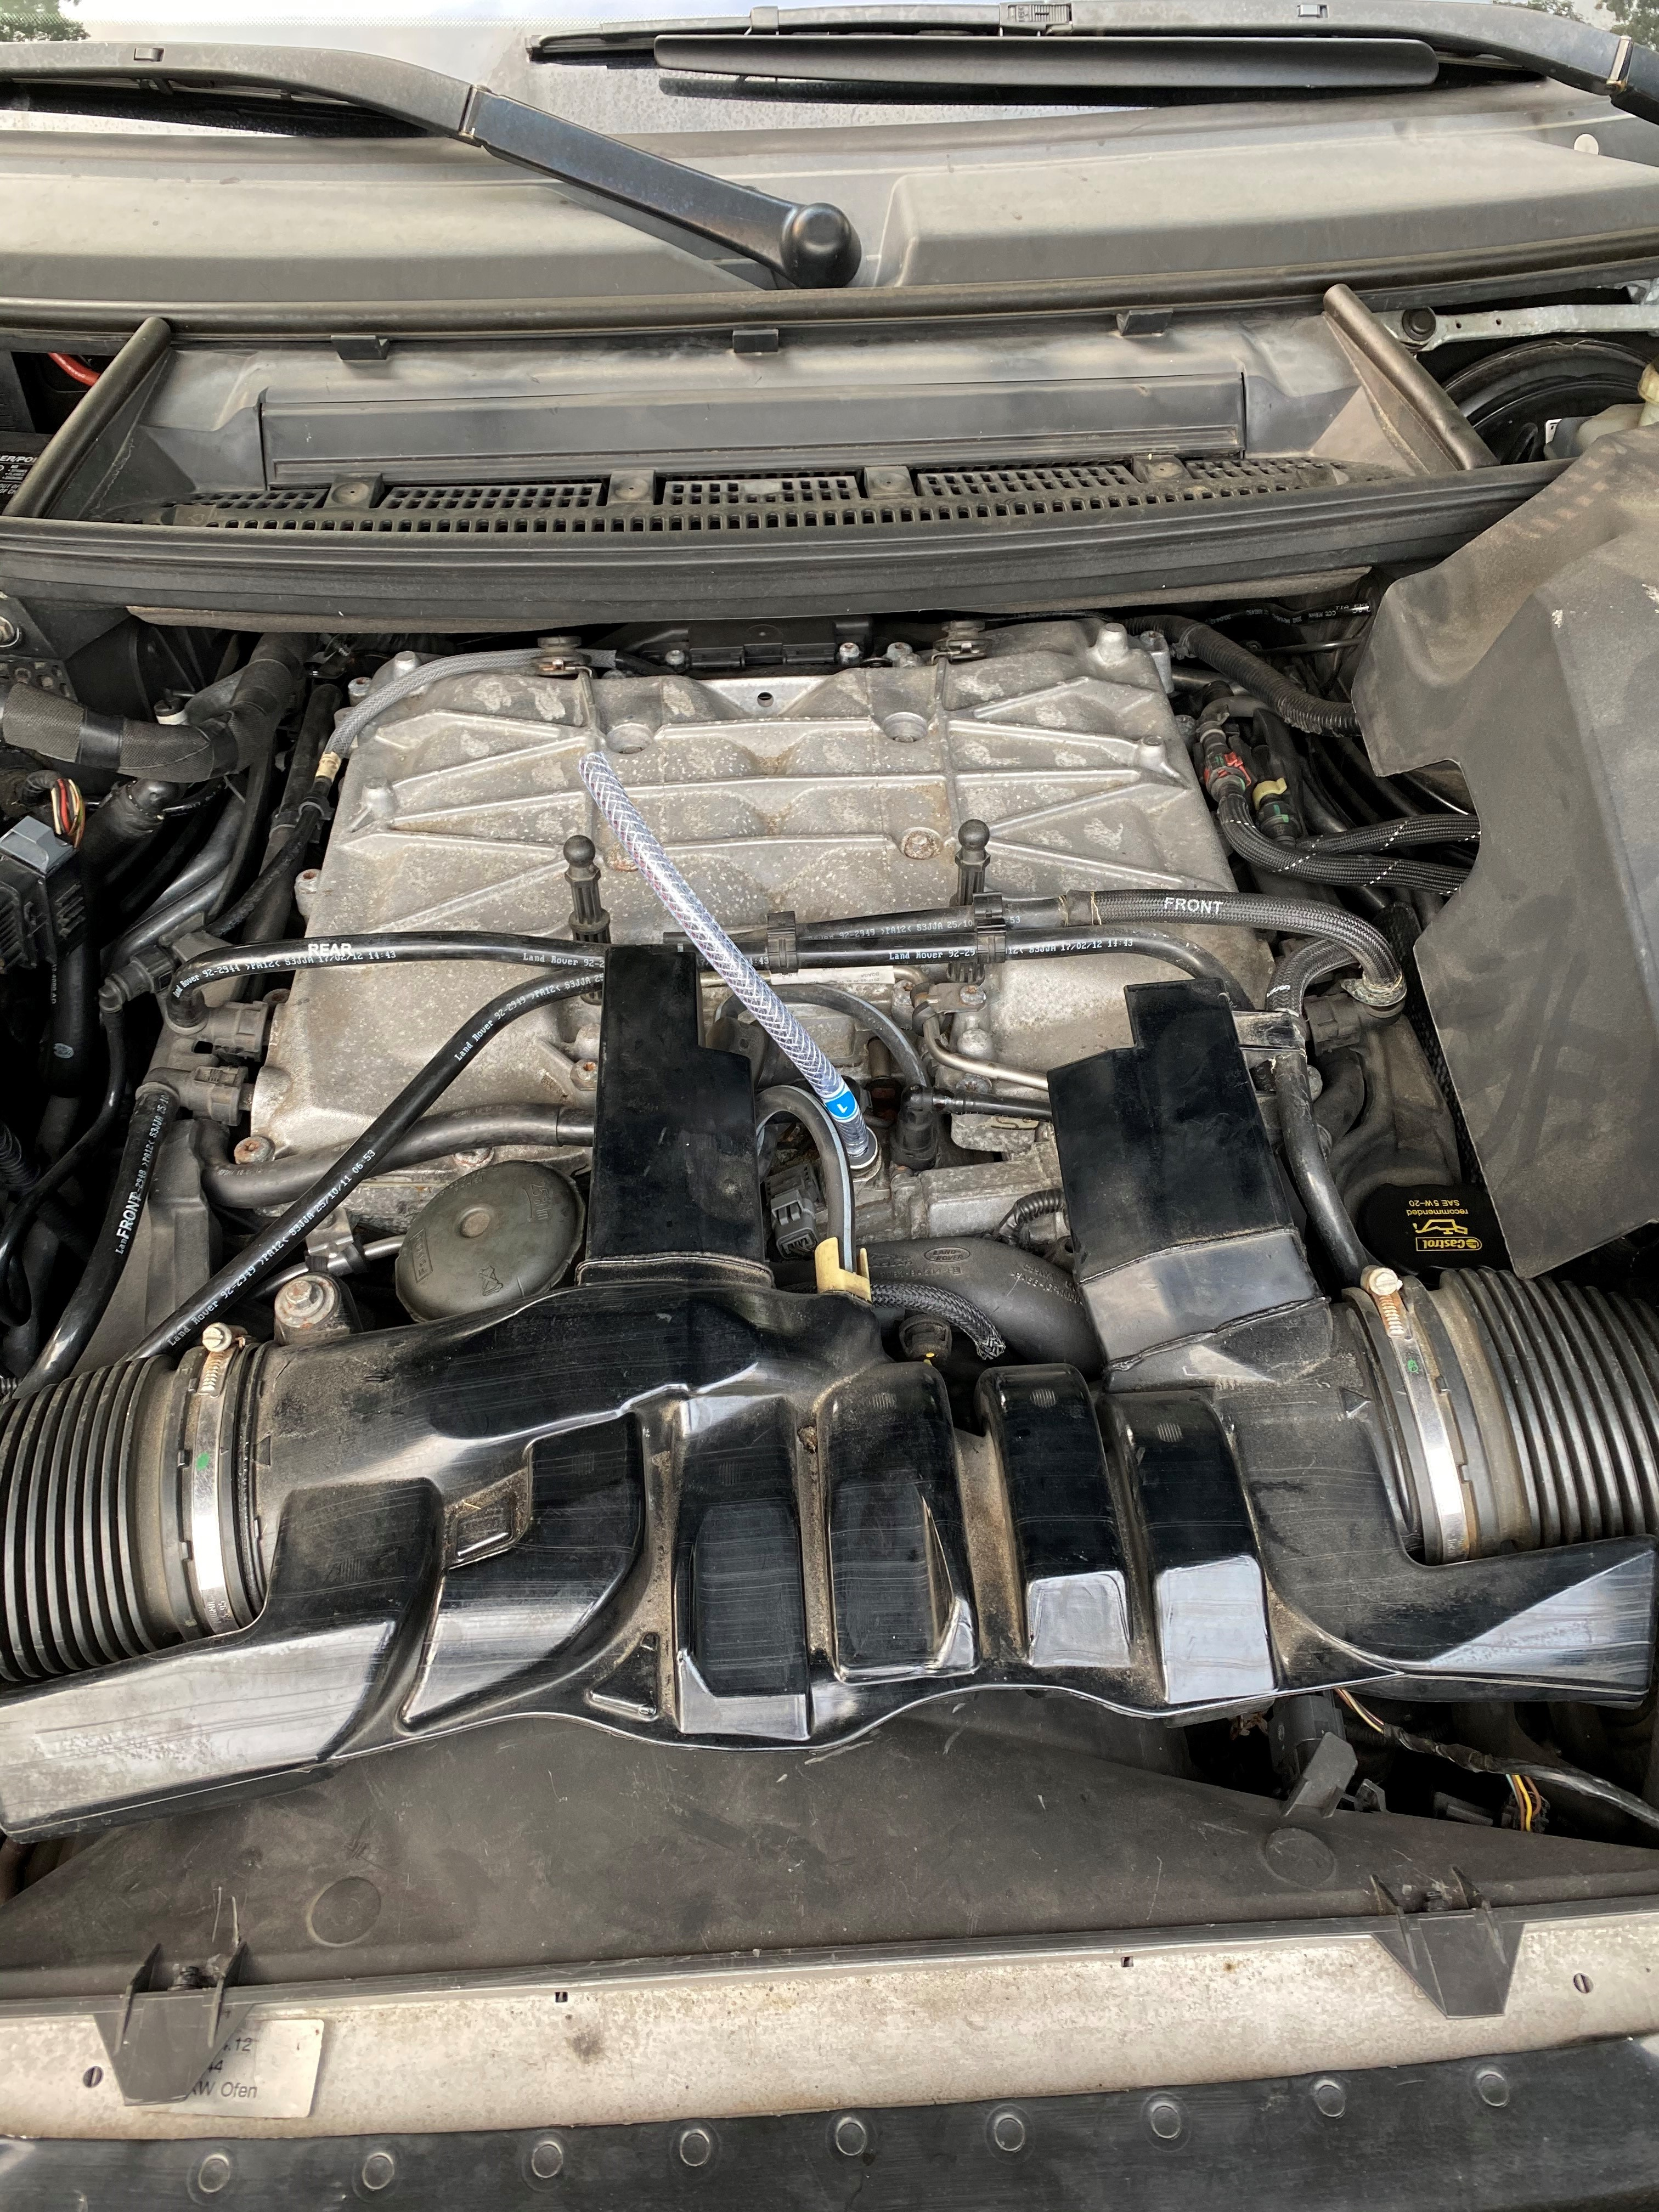 2012-Land-Rover-V8-Supercharged-Close-Hose-connected-wide.jpg